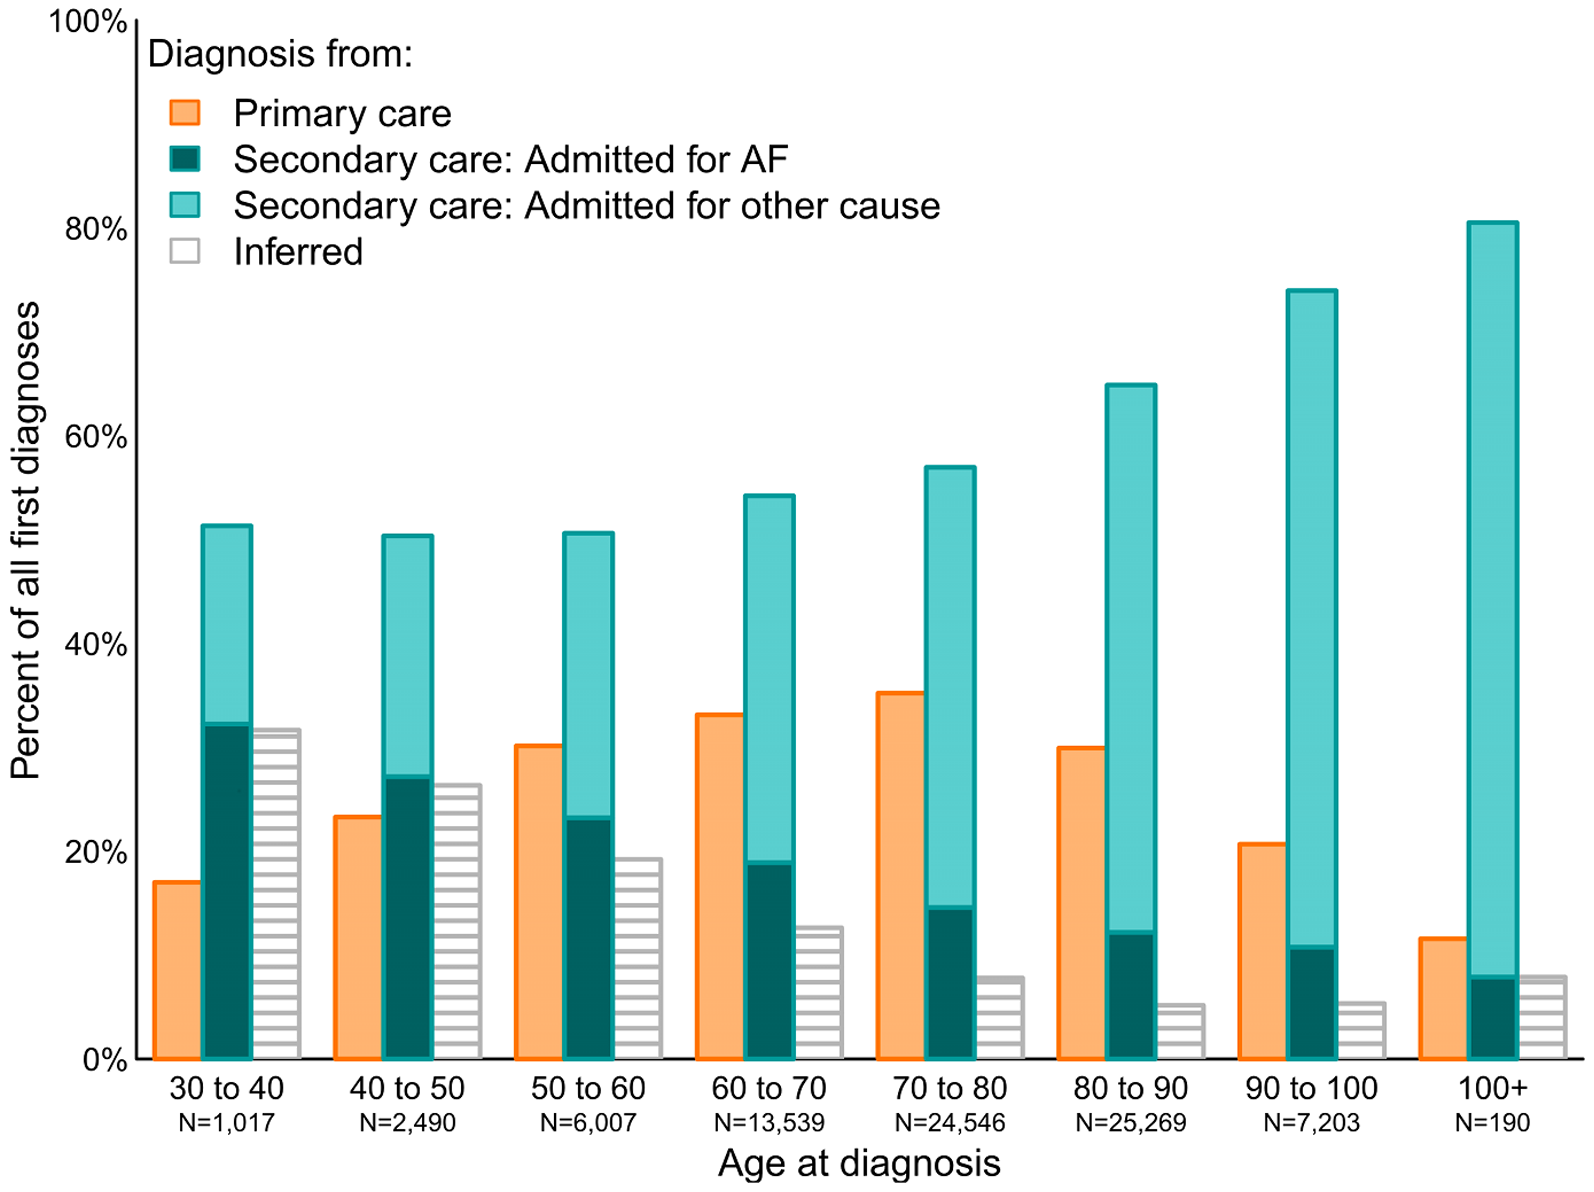 Figure 4. Proportion of incident atrial fibrillation cases identified in each source by age at diagnosis. doi:10.1371/journal.pone.0110900.